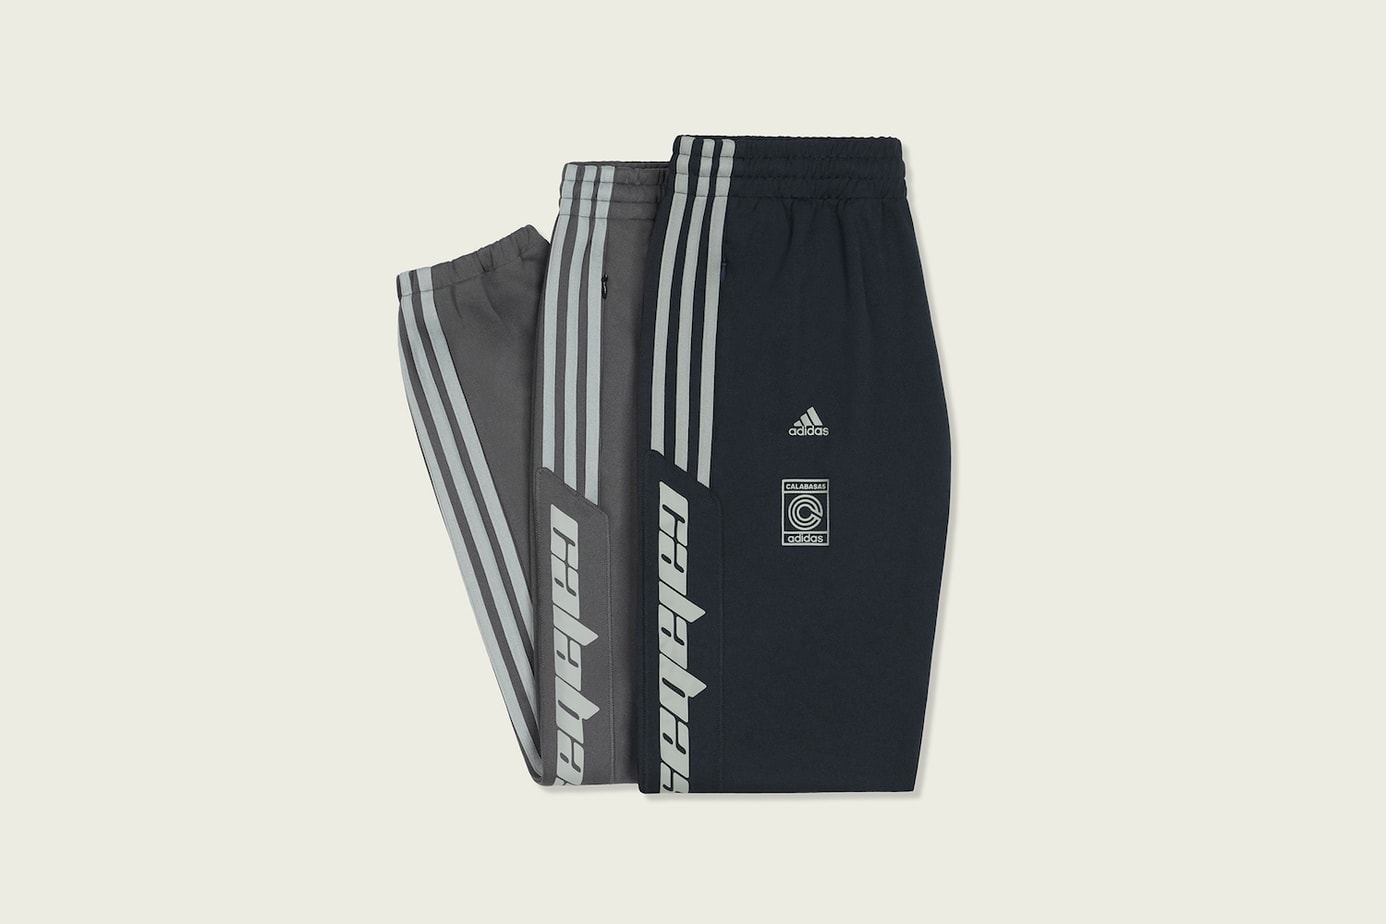 finest selection 4bf3c 581dd adidas Yeezy Calabasas Track Pants Online Links